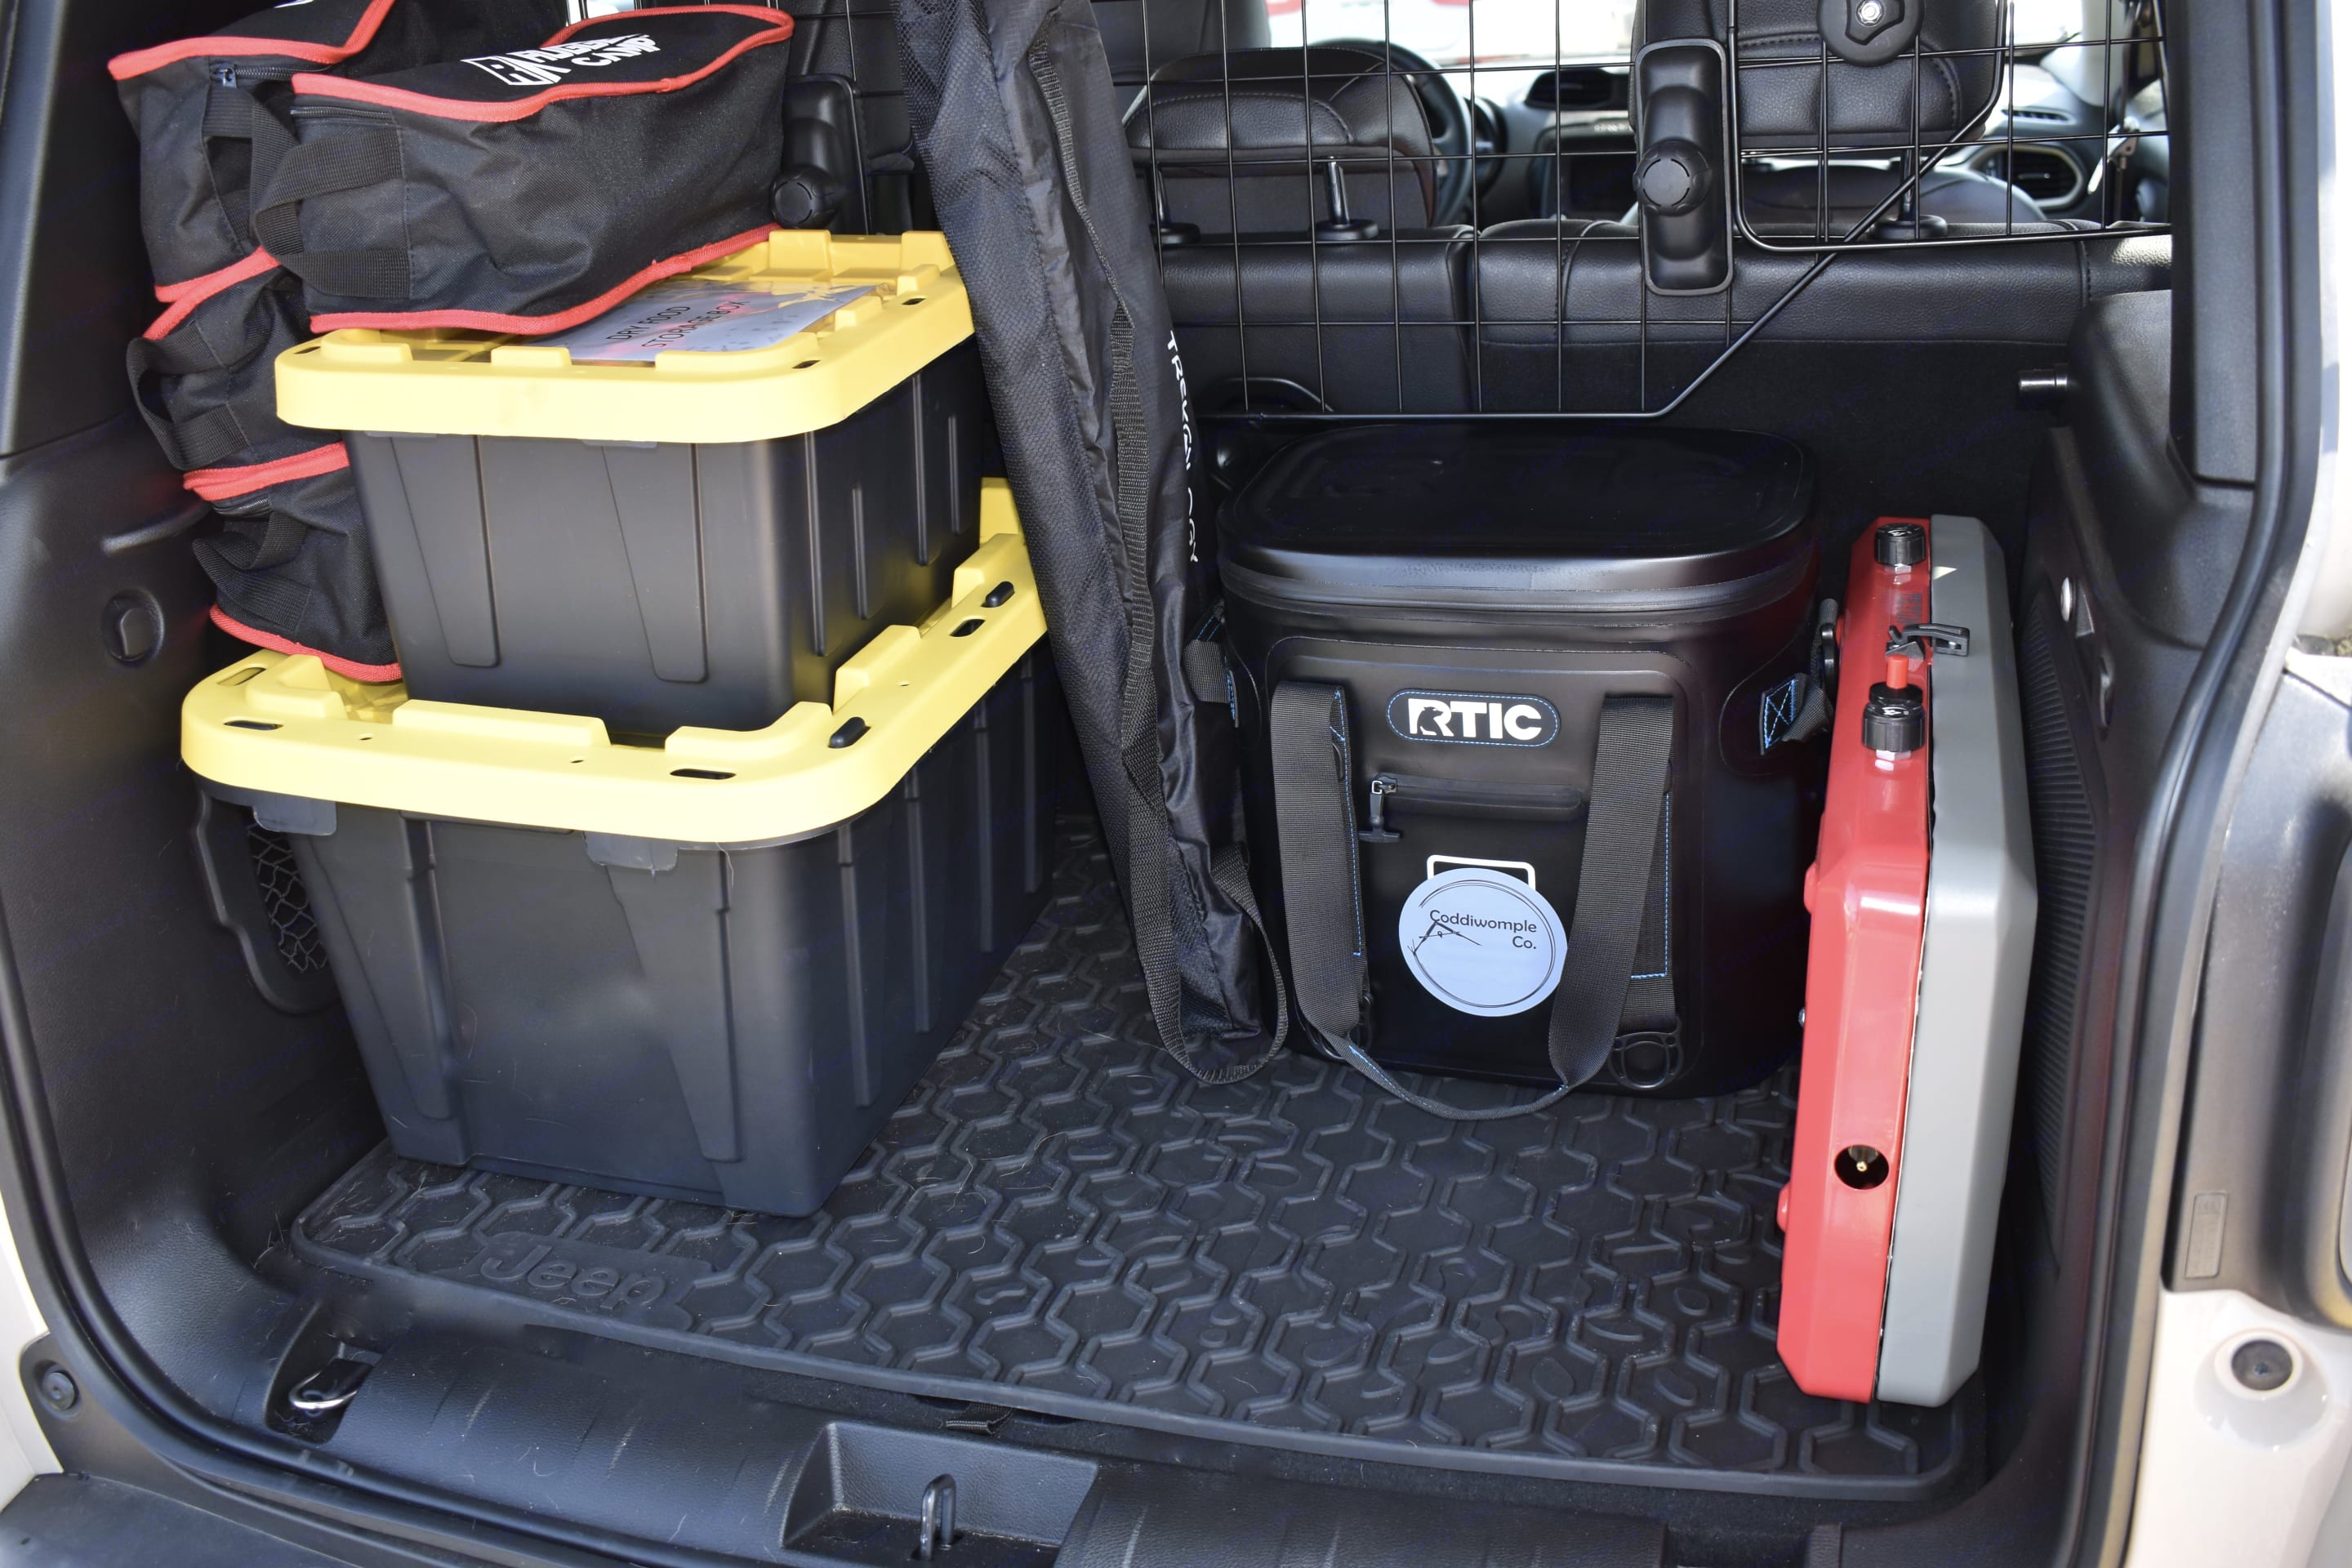 Gear included: gas stove, cooler, table, chairs (4), dry food storage container, cooking equipment, first aid kit, tire repair kit, full size spare tire, car jump-starter/power pack. . Jeep Renegade 2017